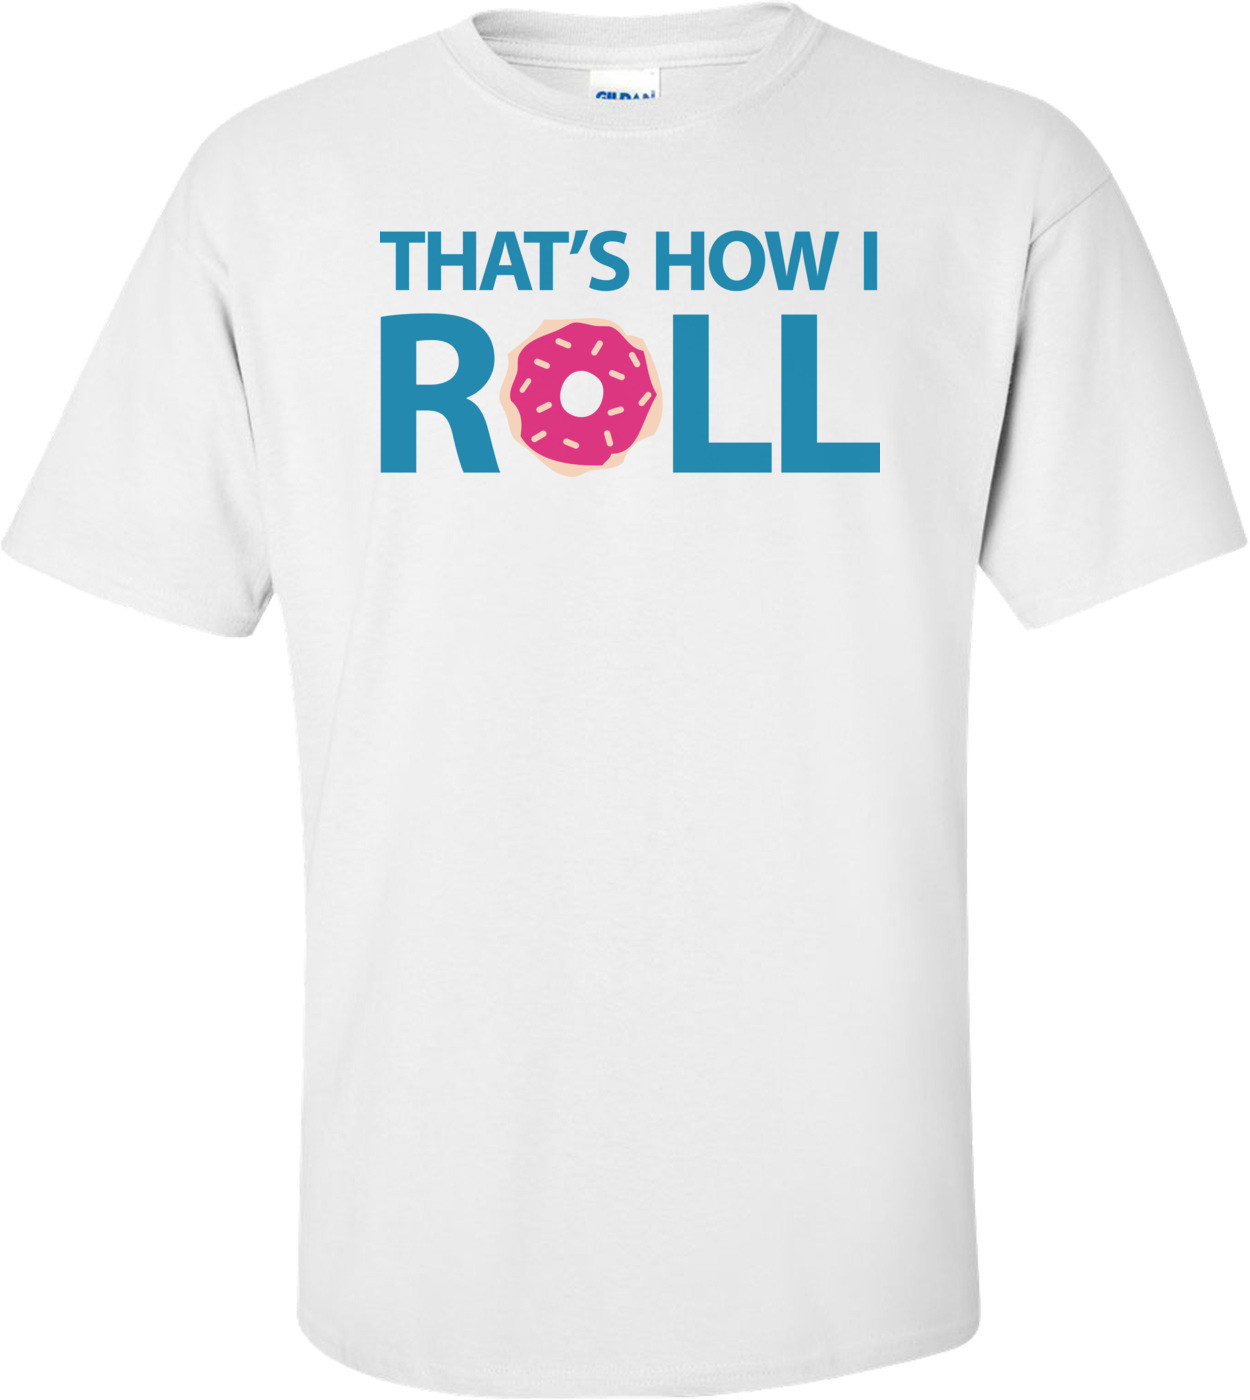 That's How I Roll - Donut Funny Shirt